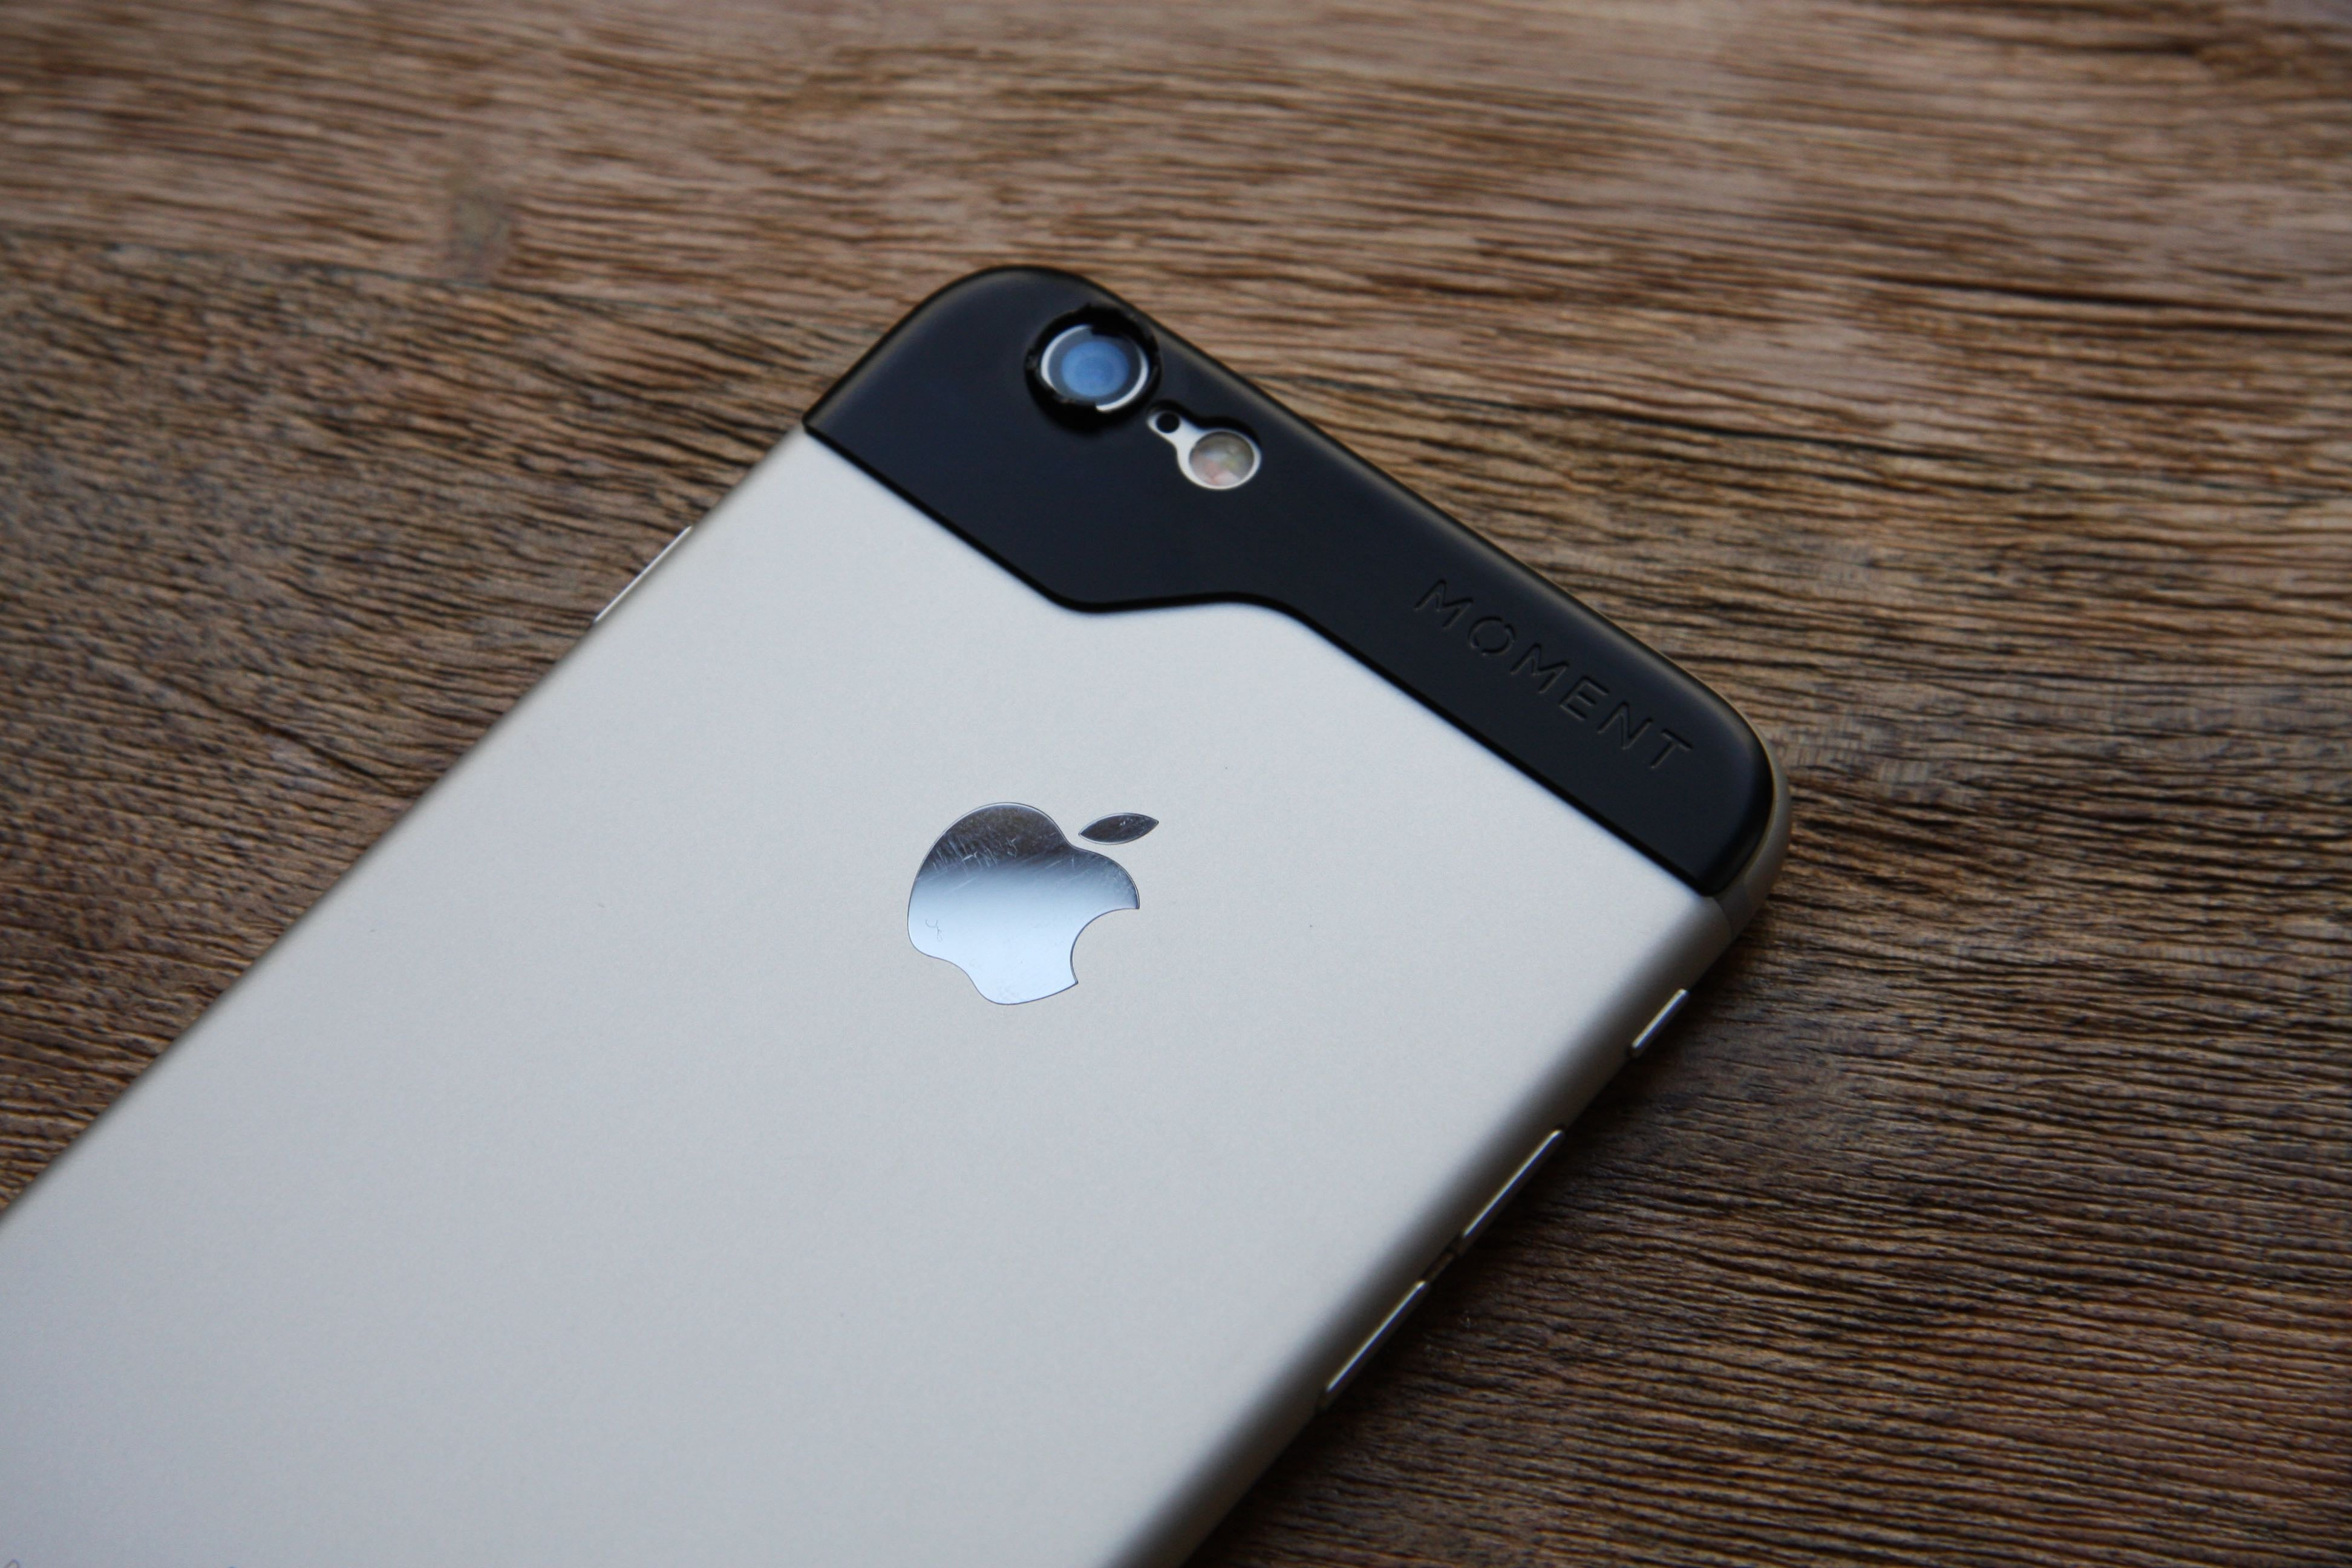 purchase cheap 769b5 cfd03 Moment Lenses review: These top-notch iPhone camera lenses are a ...